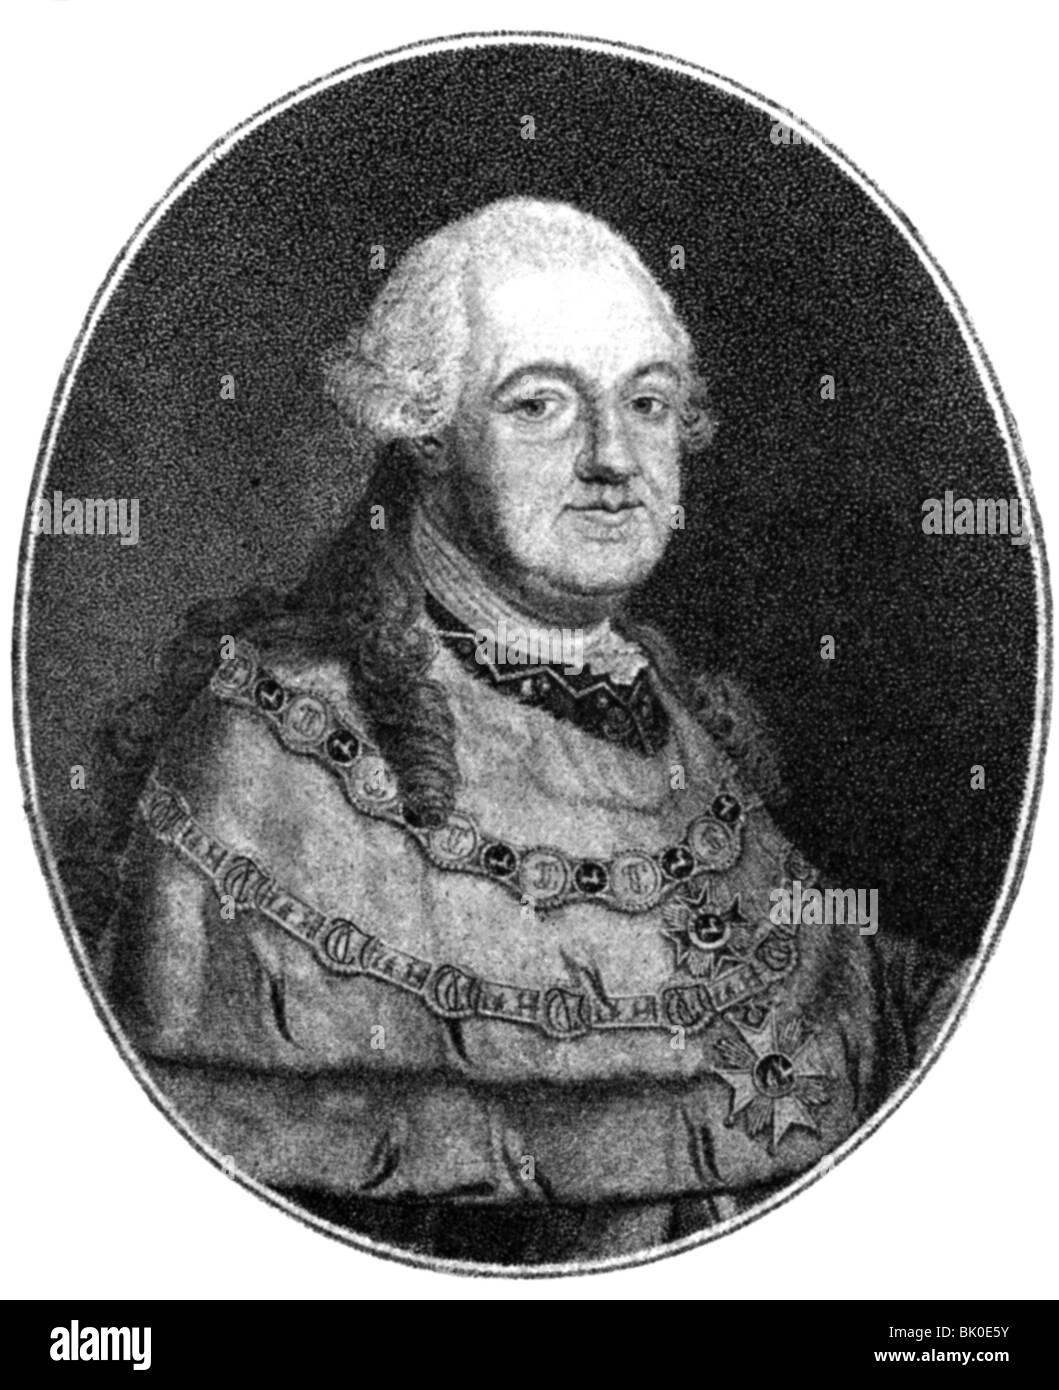 Charles Theodore, 11.12.1724 - 16.2.1799, Prince Elector of Bavaria 30.12.1777 - 16.2.1799, portrait, copper engraving Stock Photo